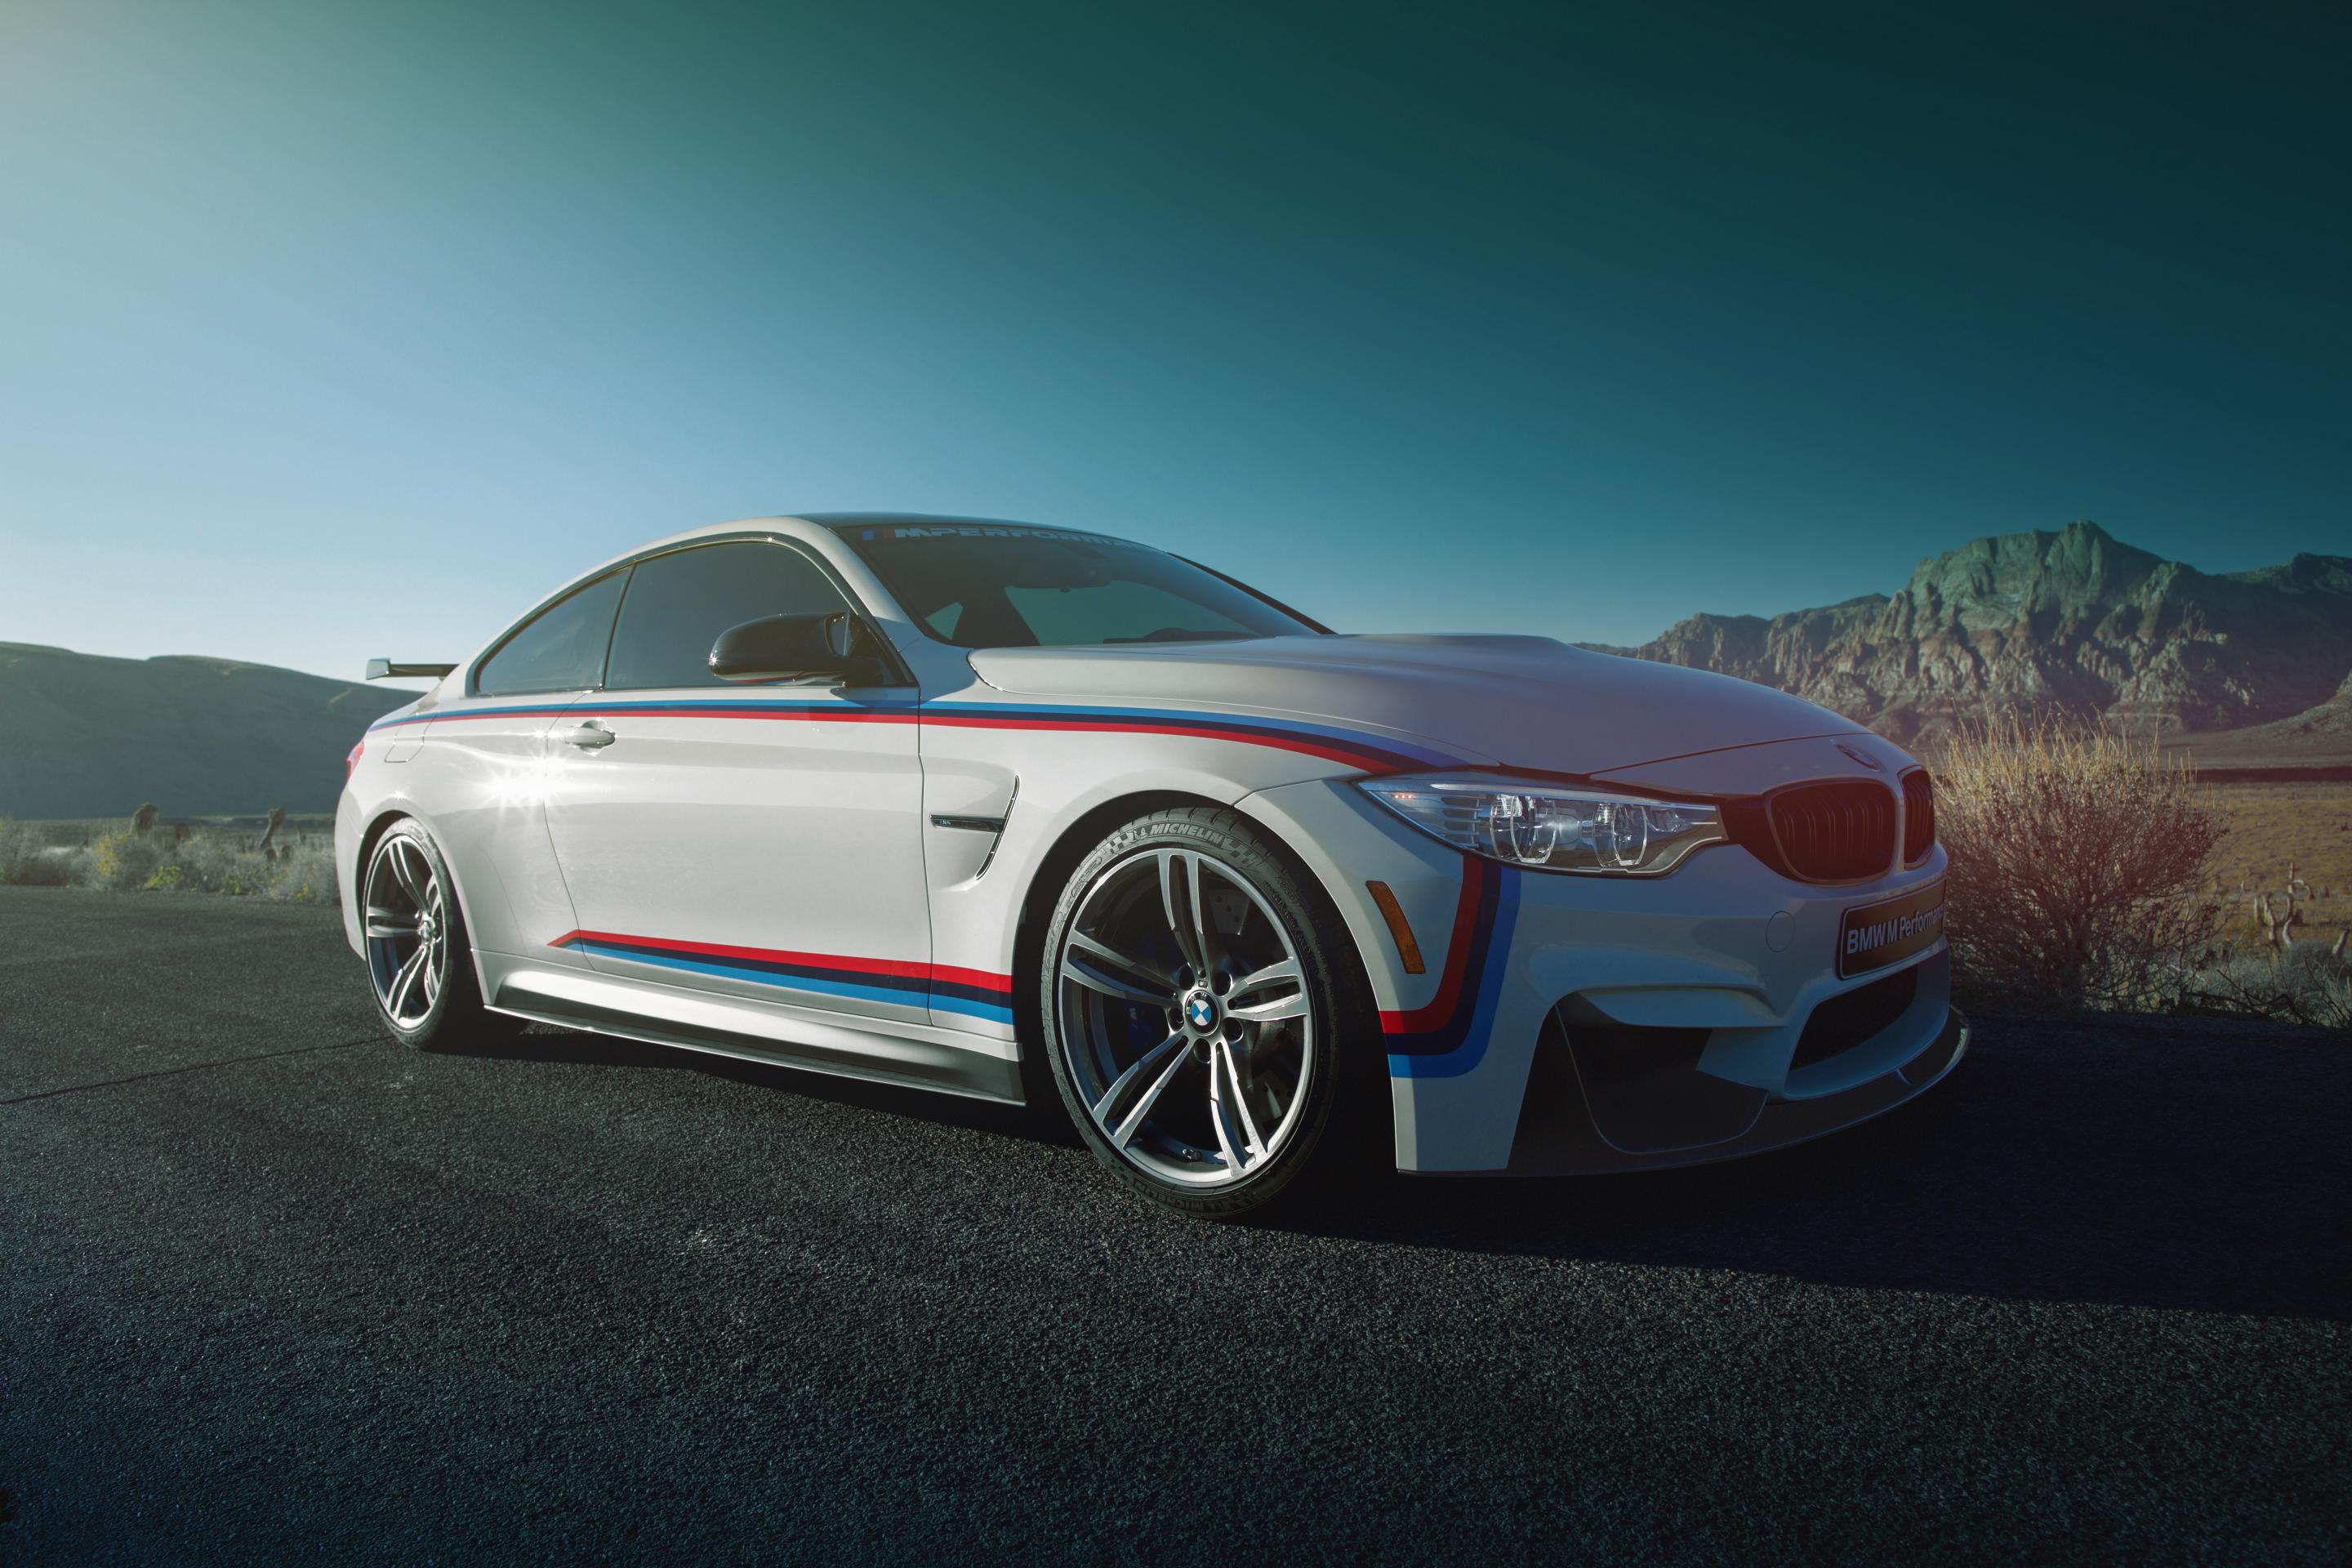 reference design s debut arriving usa in car now dealers to nj bmw photos